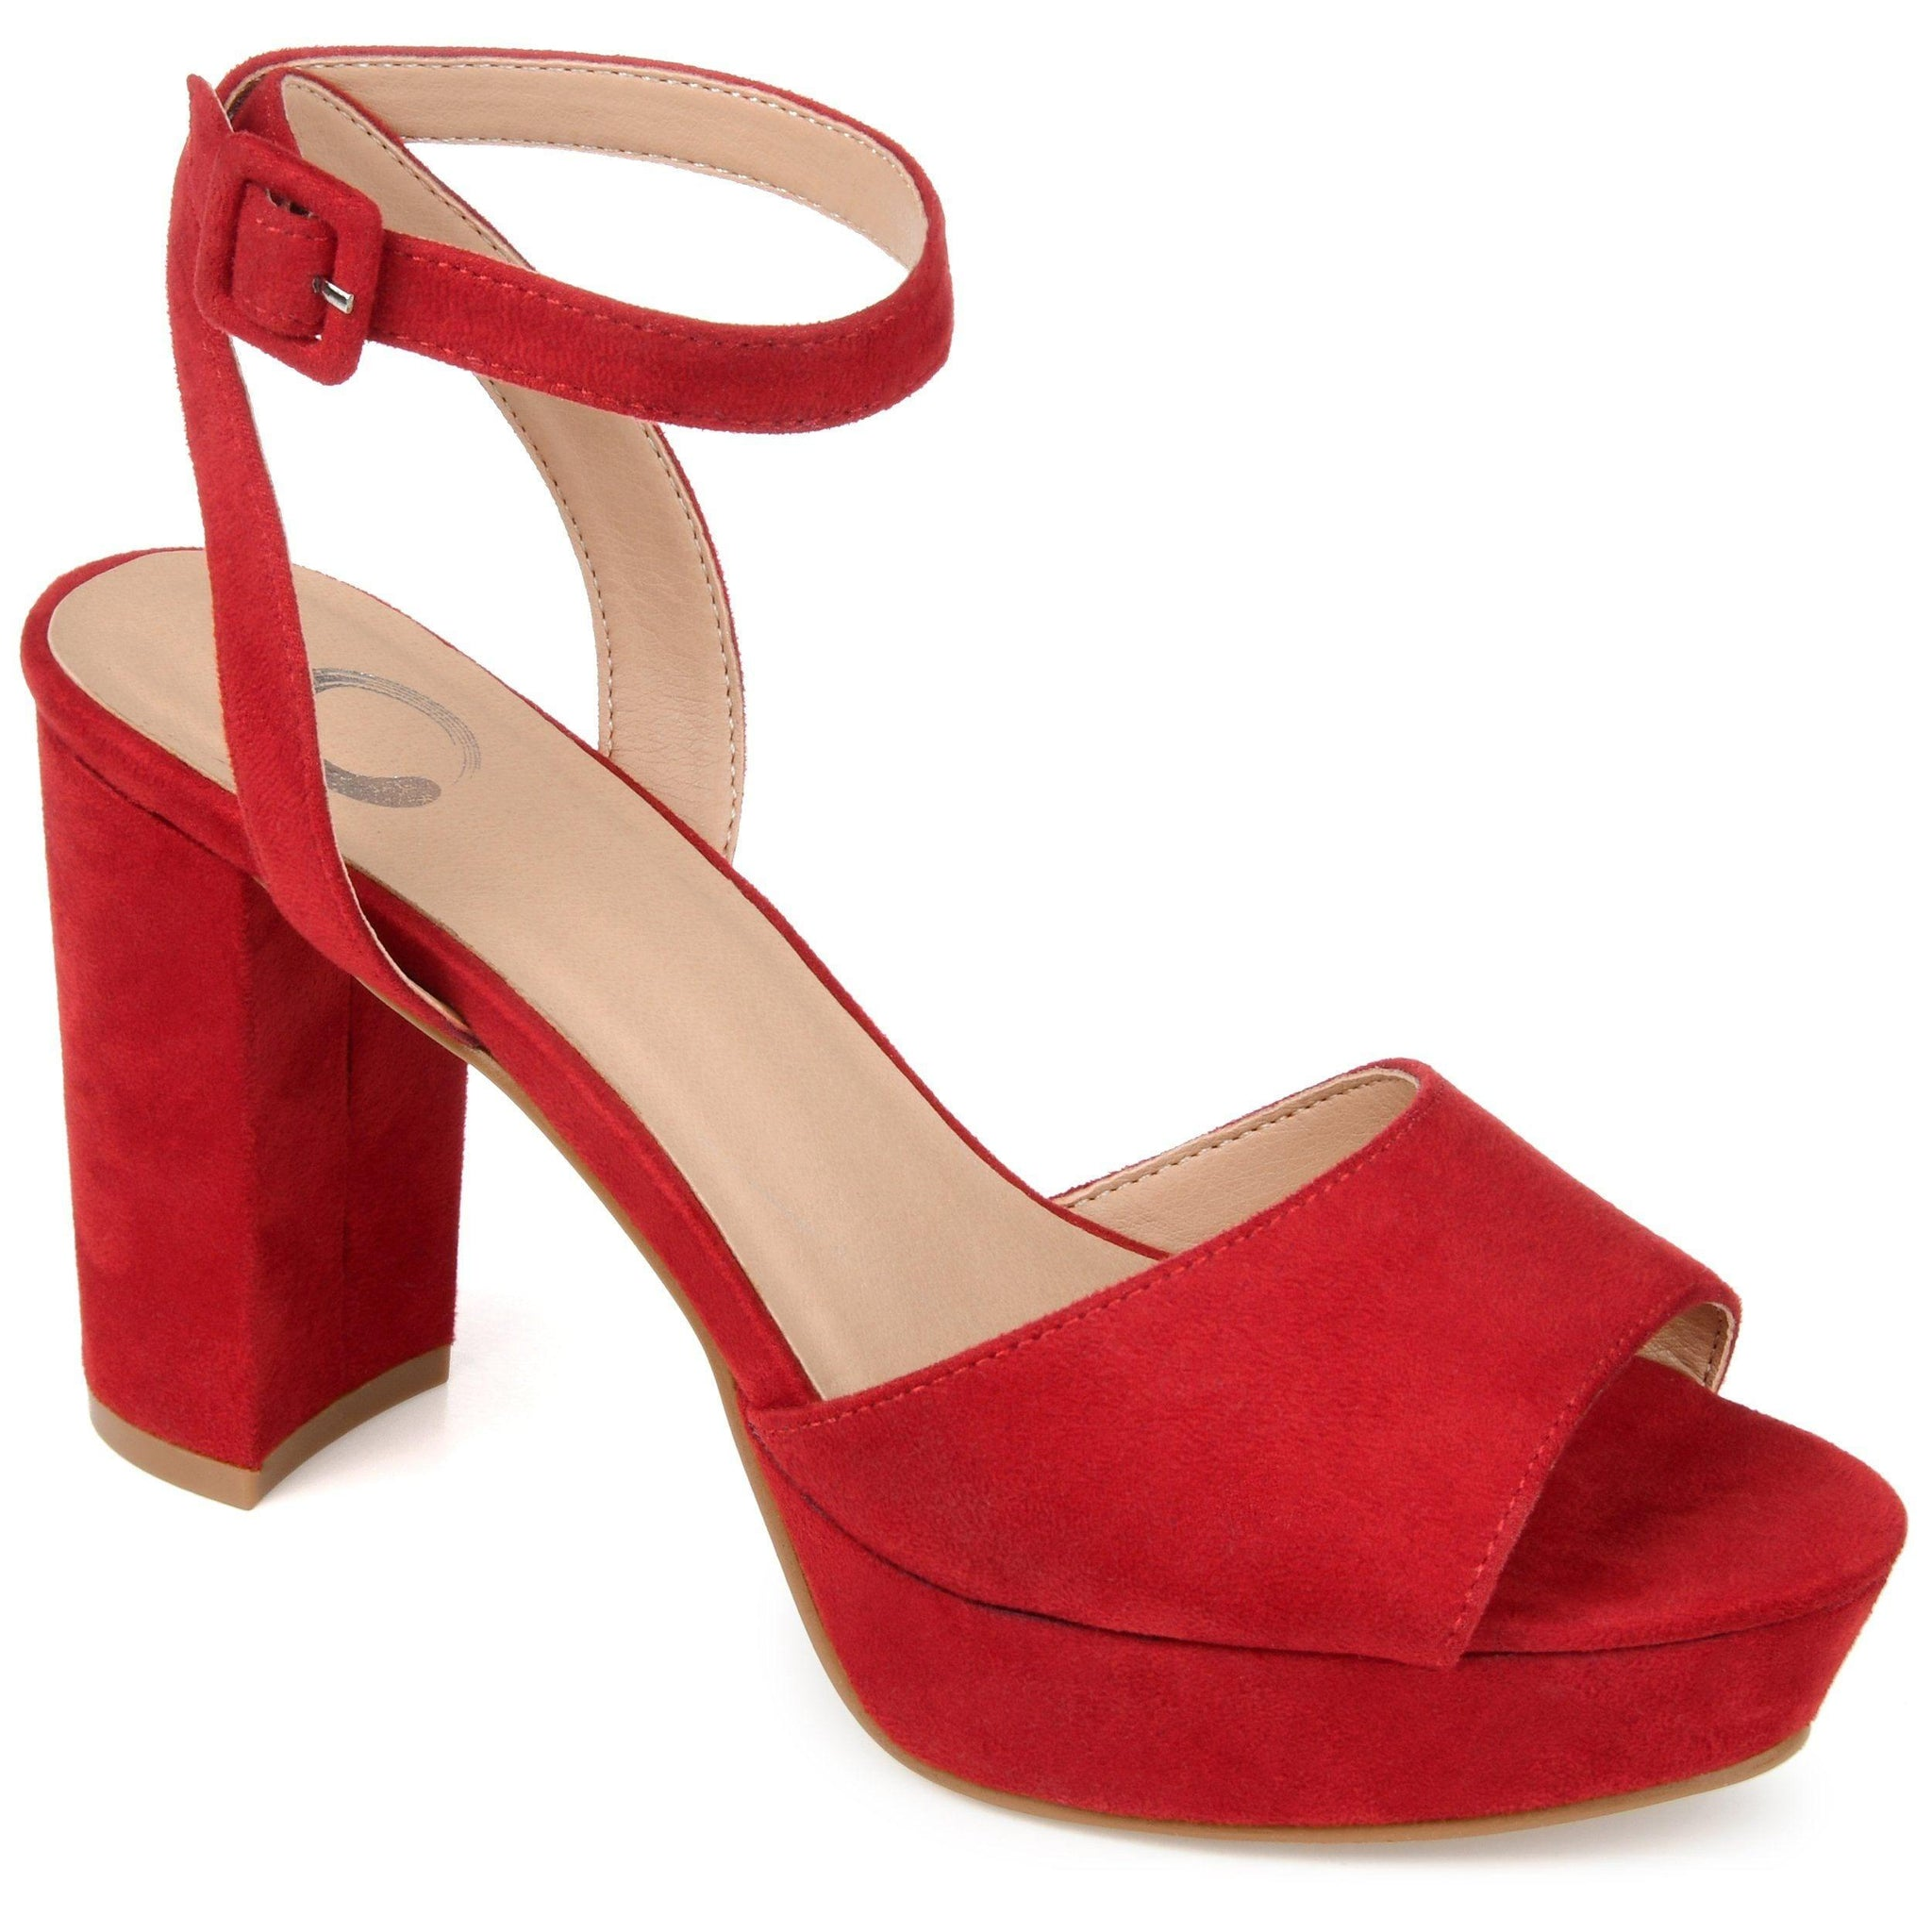 NAIRRI SHOES Journee Collection Red 10